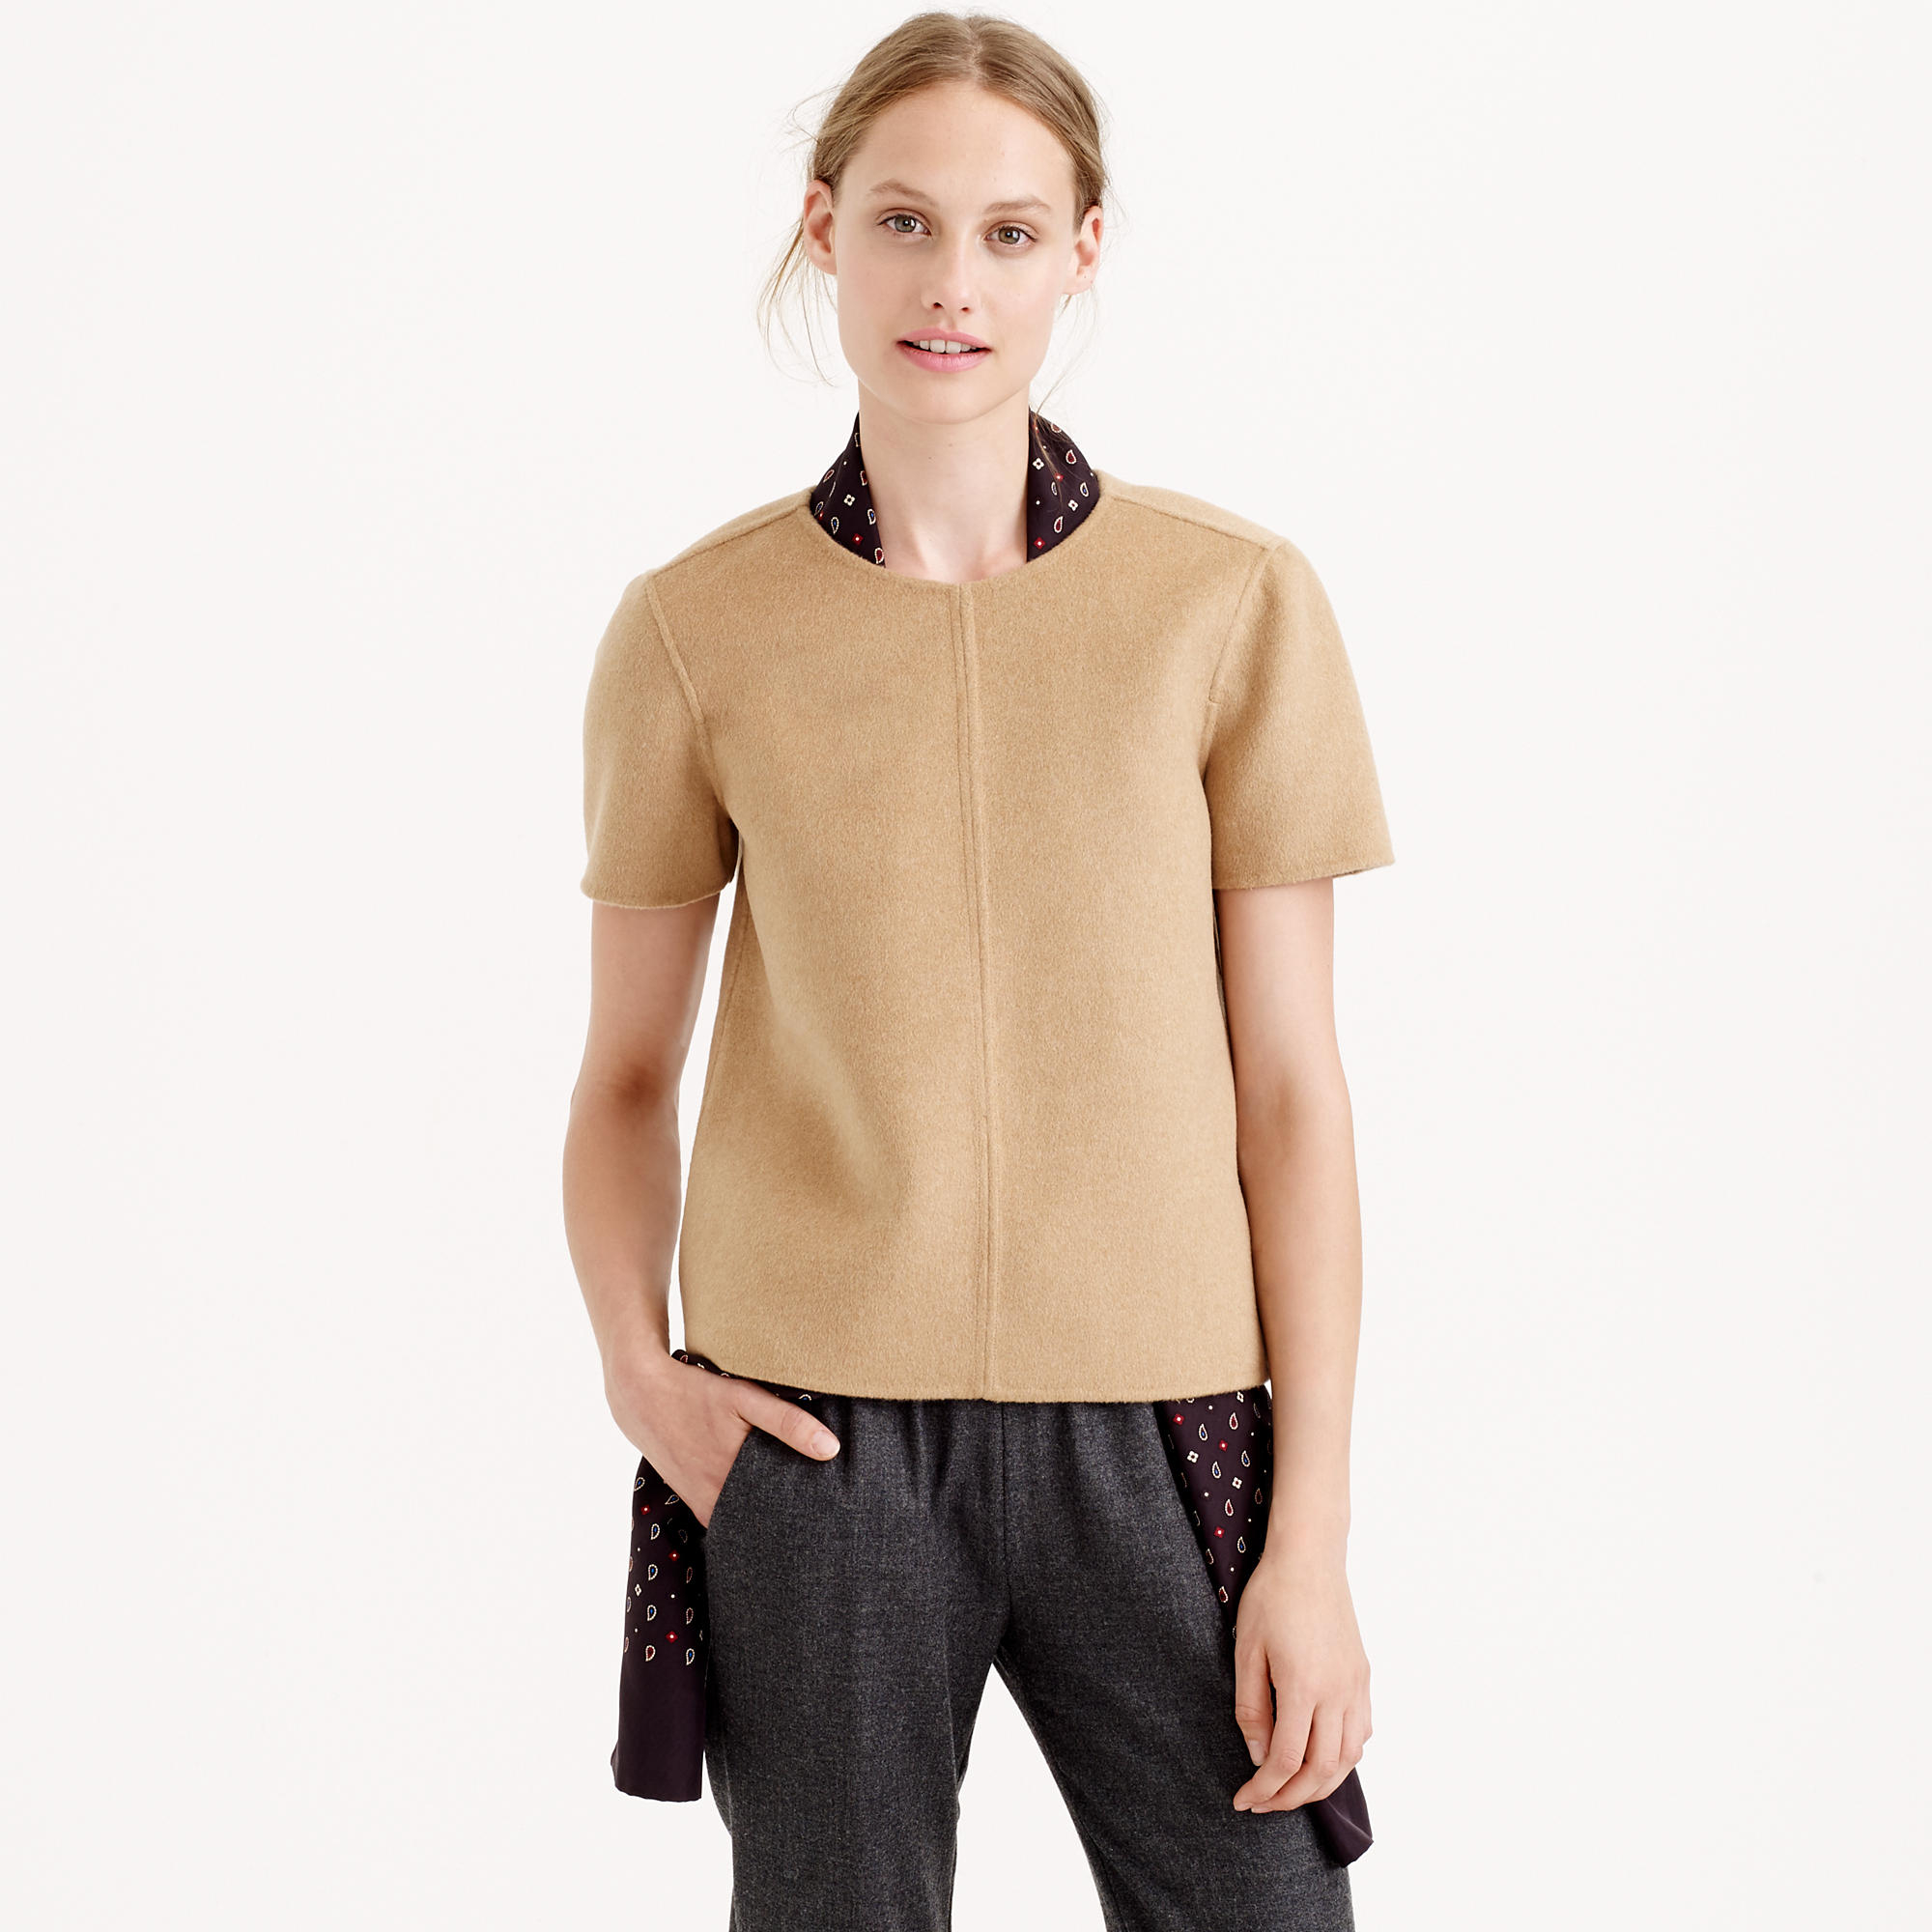 Shop the Italian Cashmere Long-Sleeve T-Shirt at inerloadsr5s.gq and see our entire selection of Women's Cashmere Sweaters.